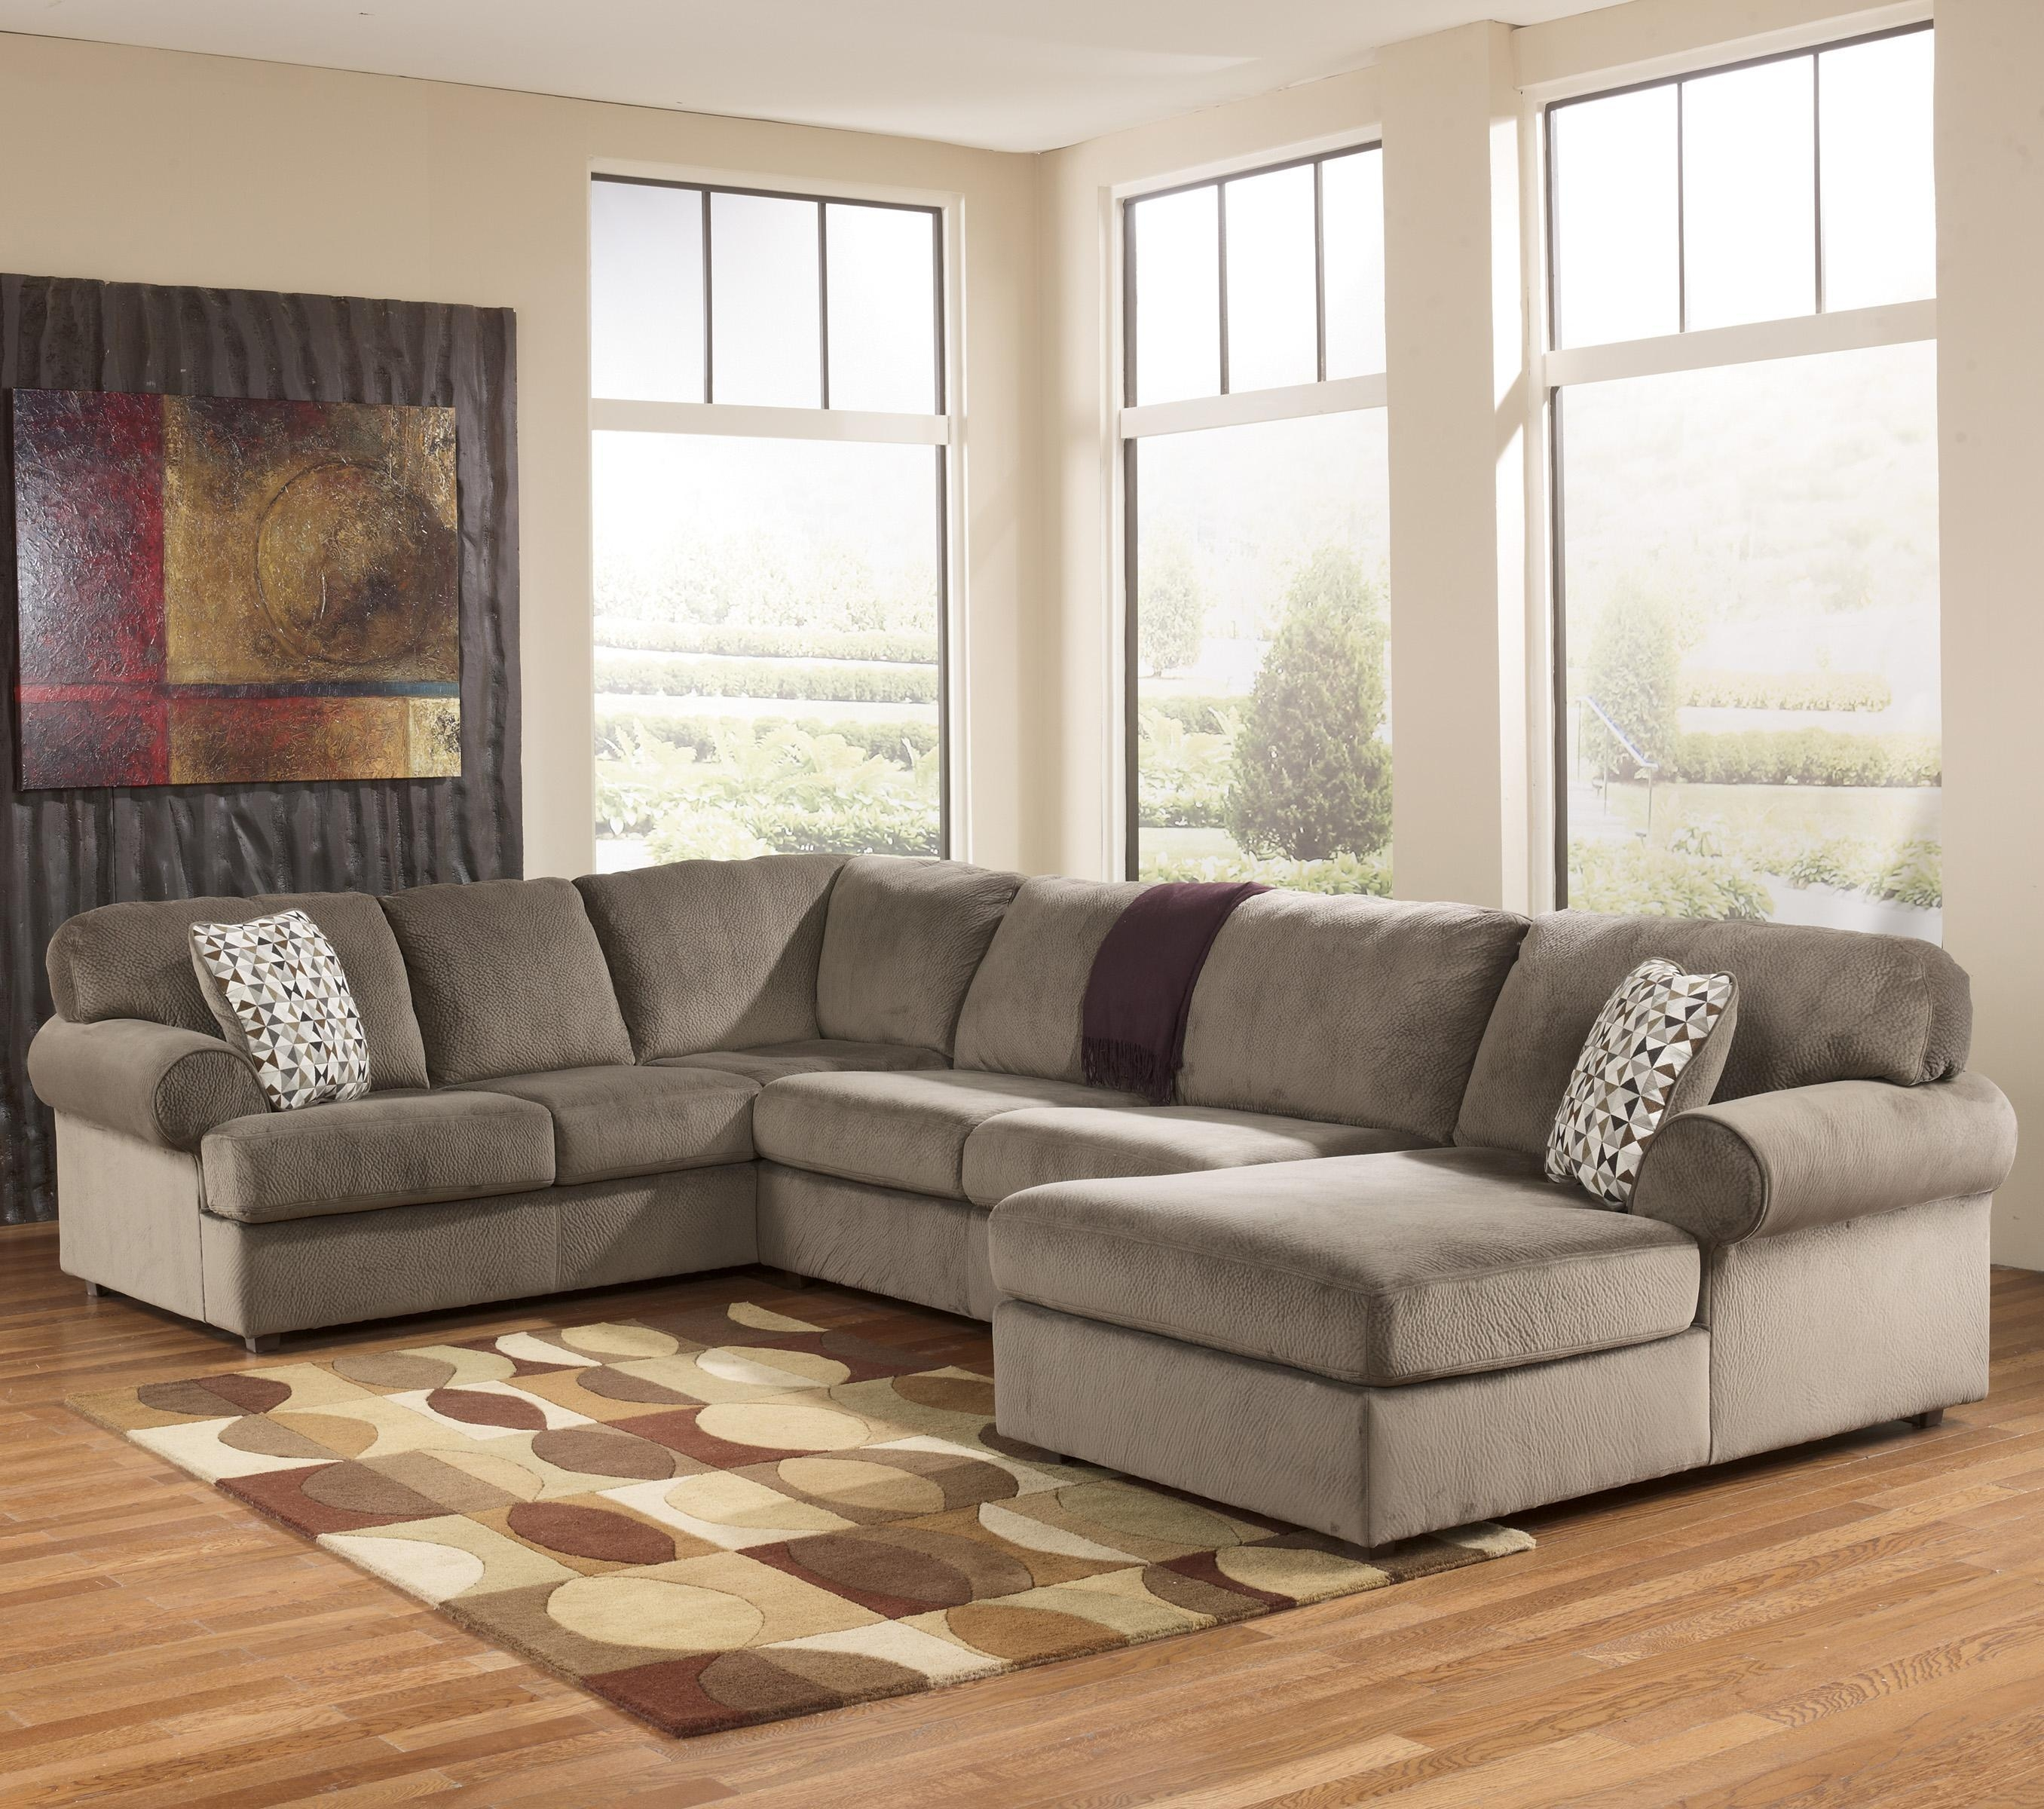 Sofas Center : Ashley Furniture Sectionals Sectional Couch Gray For Ashley Furniture Corduroy Sectional Sofas (View 7 of 20)